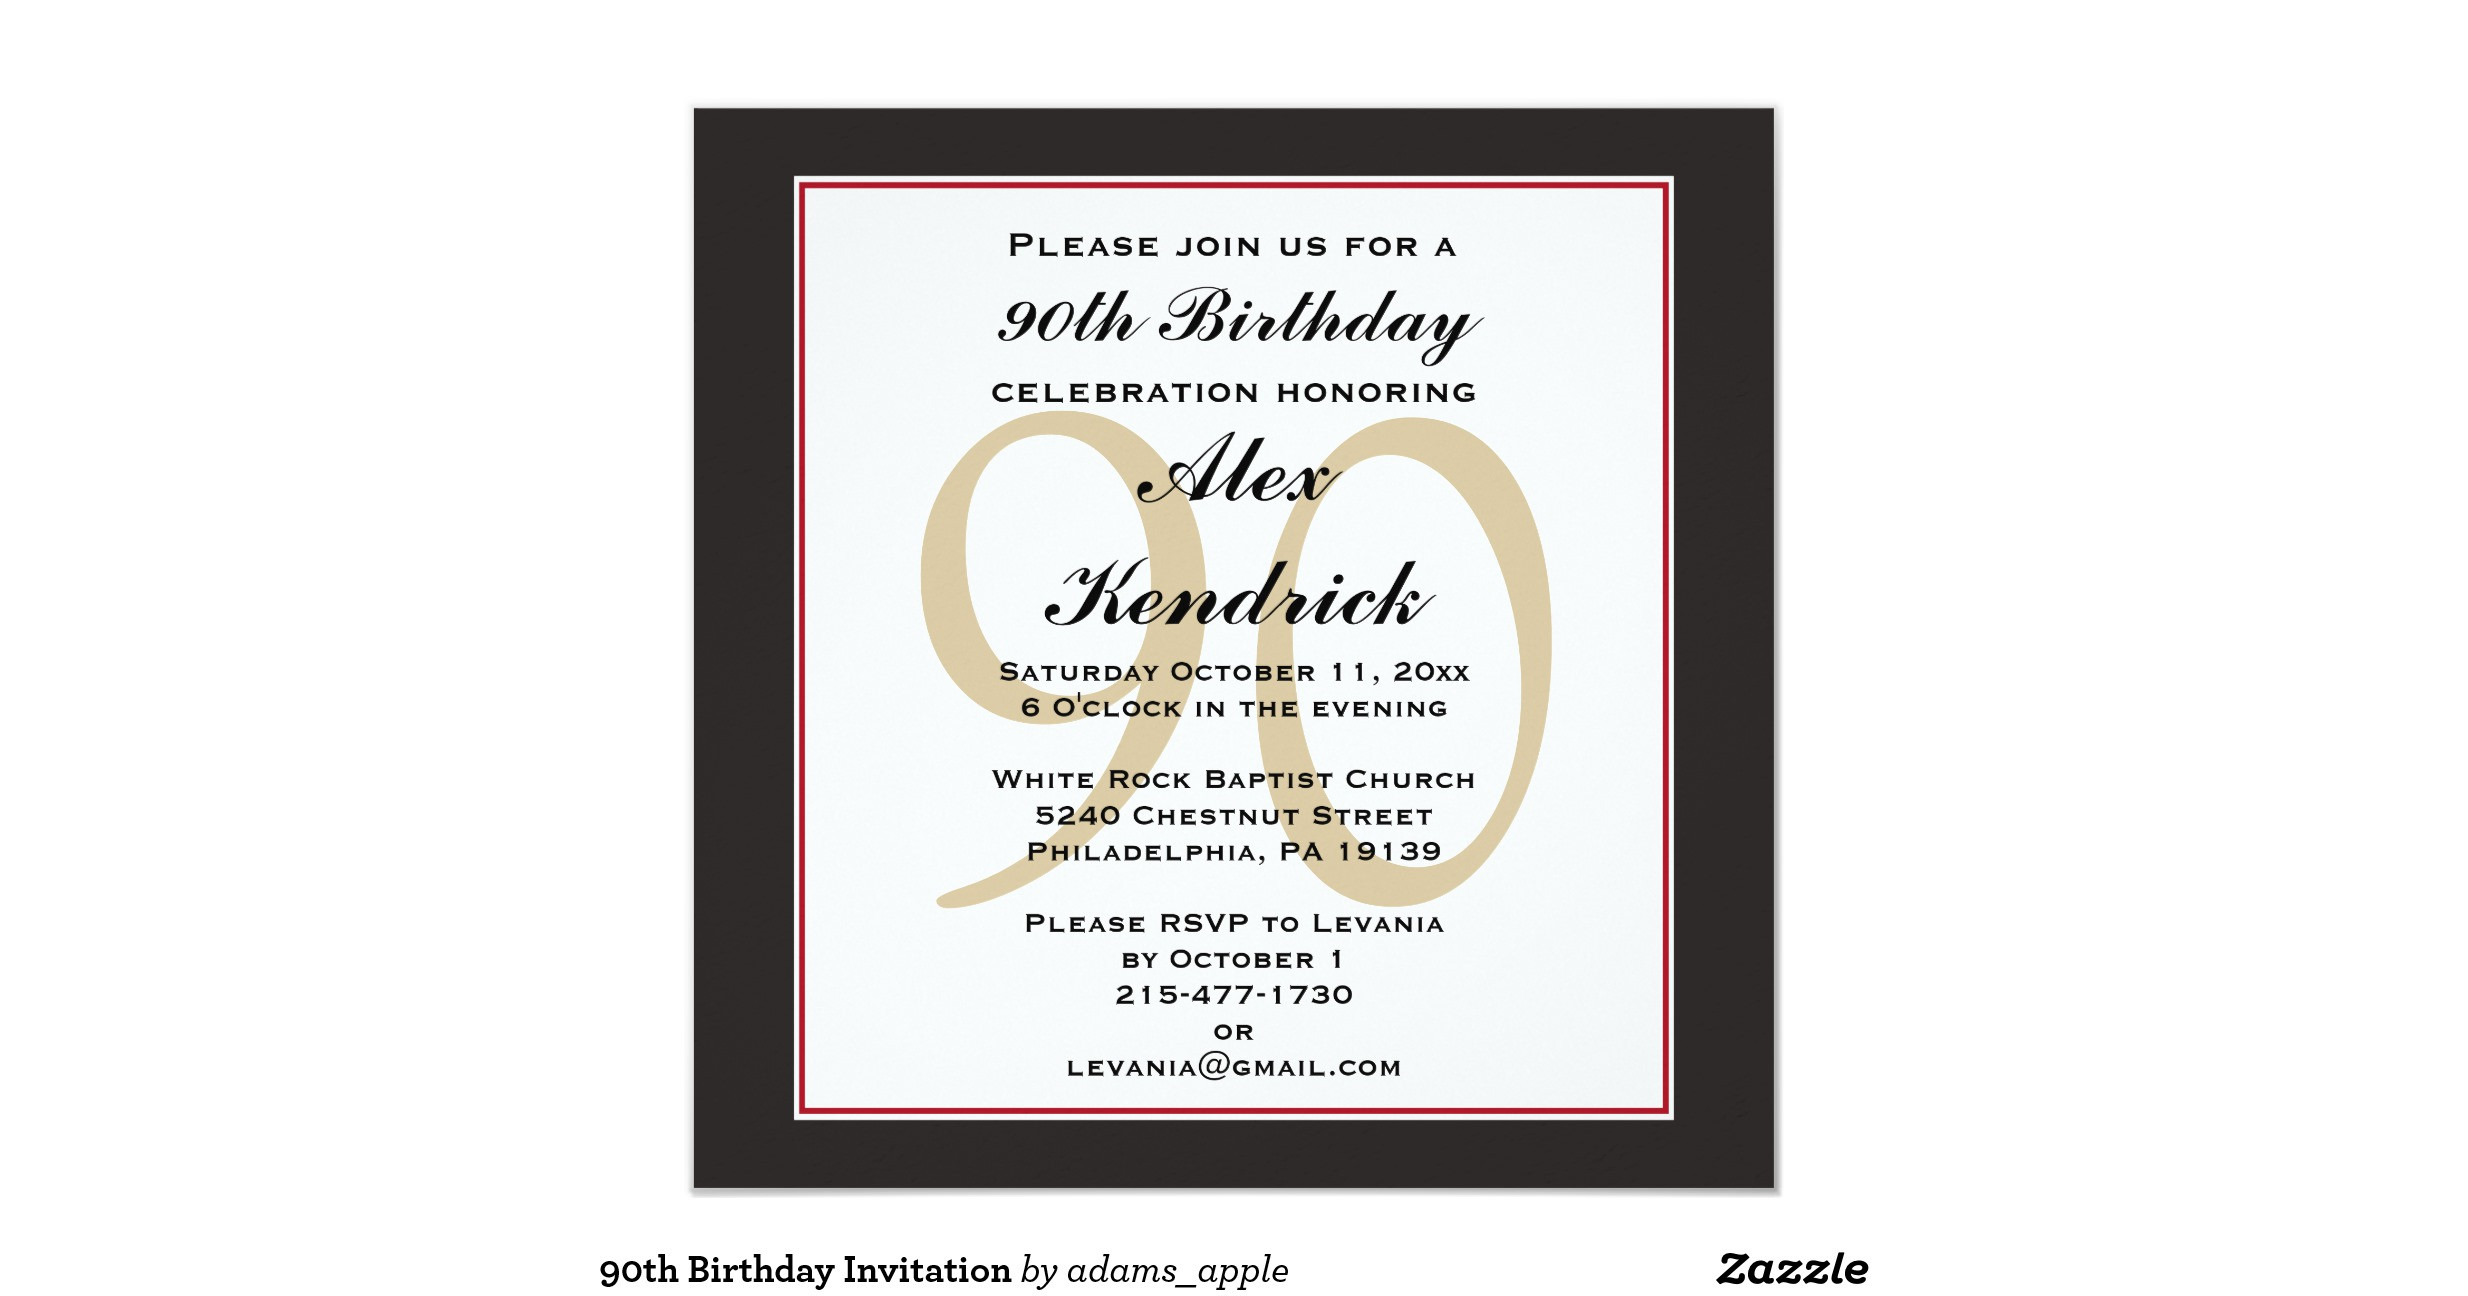 Best ideas about Zazzle Birthday Invitations . Save or Pin 90th birthday invitation r0a9501d1f0d bb5c9e868cde46b4 Now.